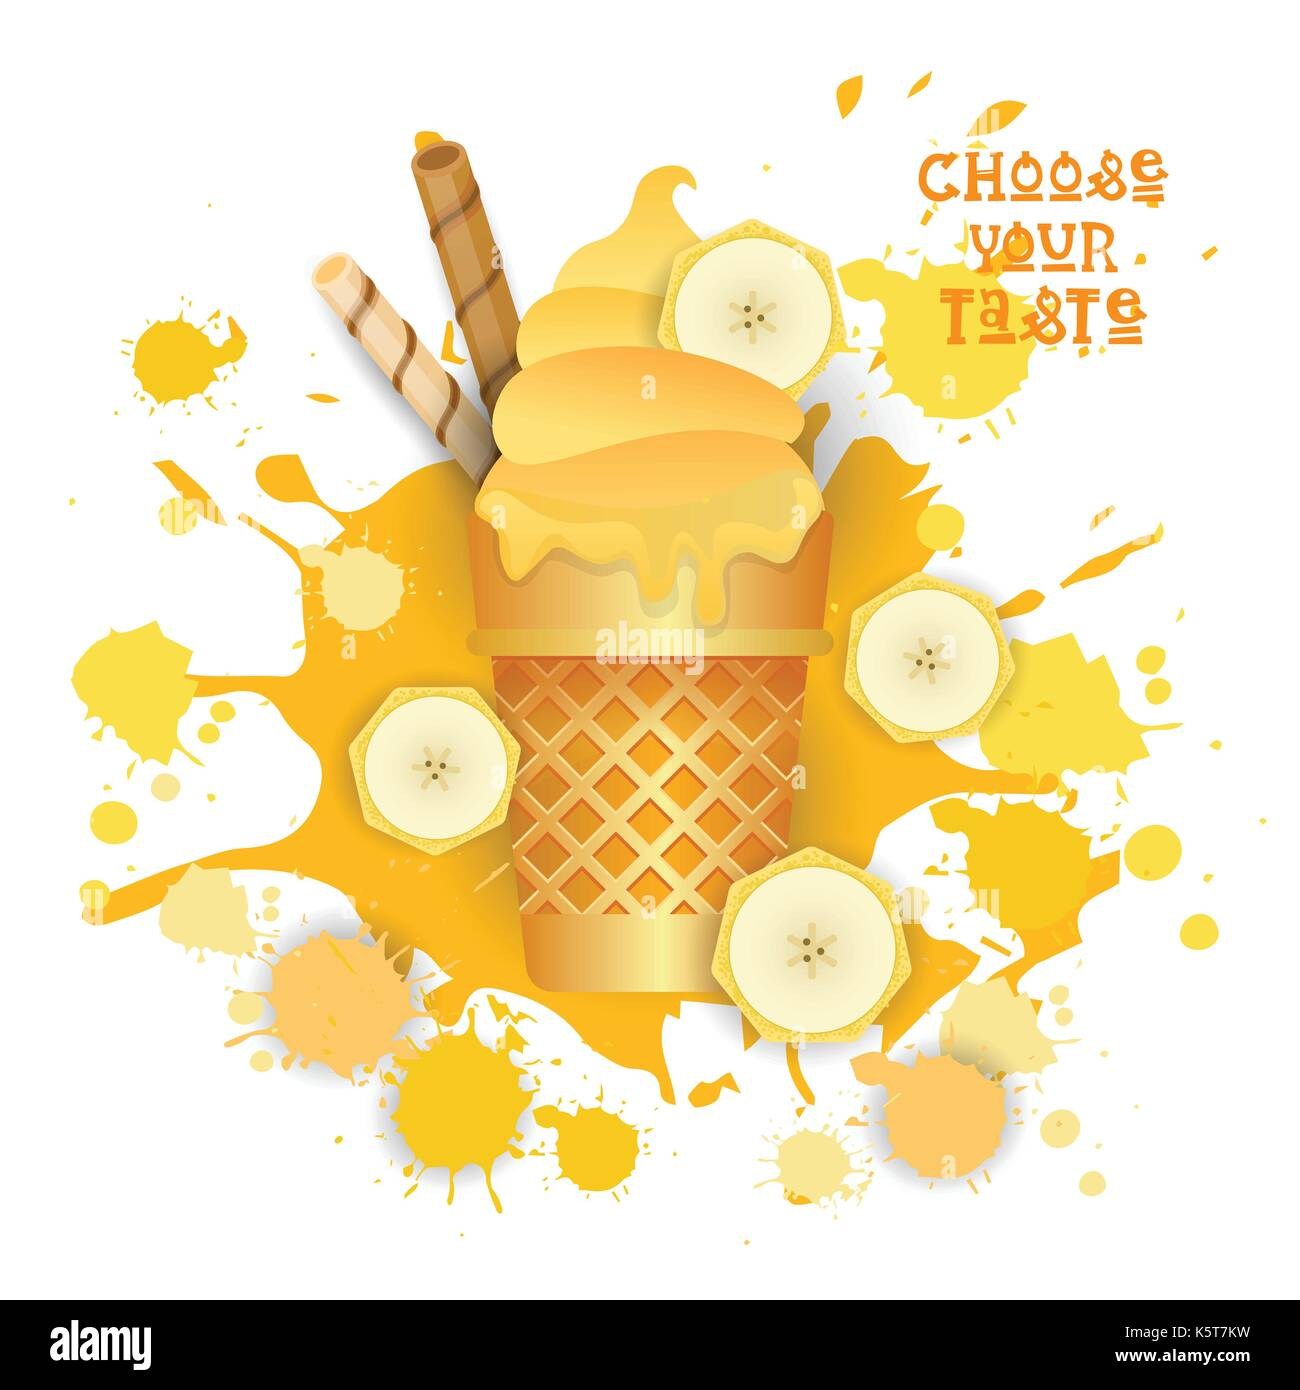 Ice Cream Banana Cone Colorful Dessert Icon Choose Your Taste Cafe Poster Stock Vector